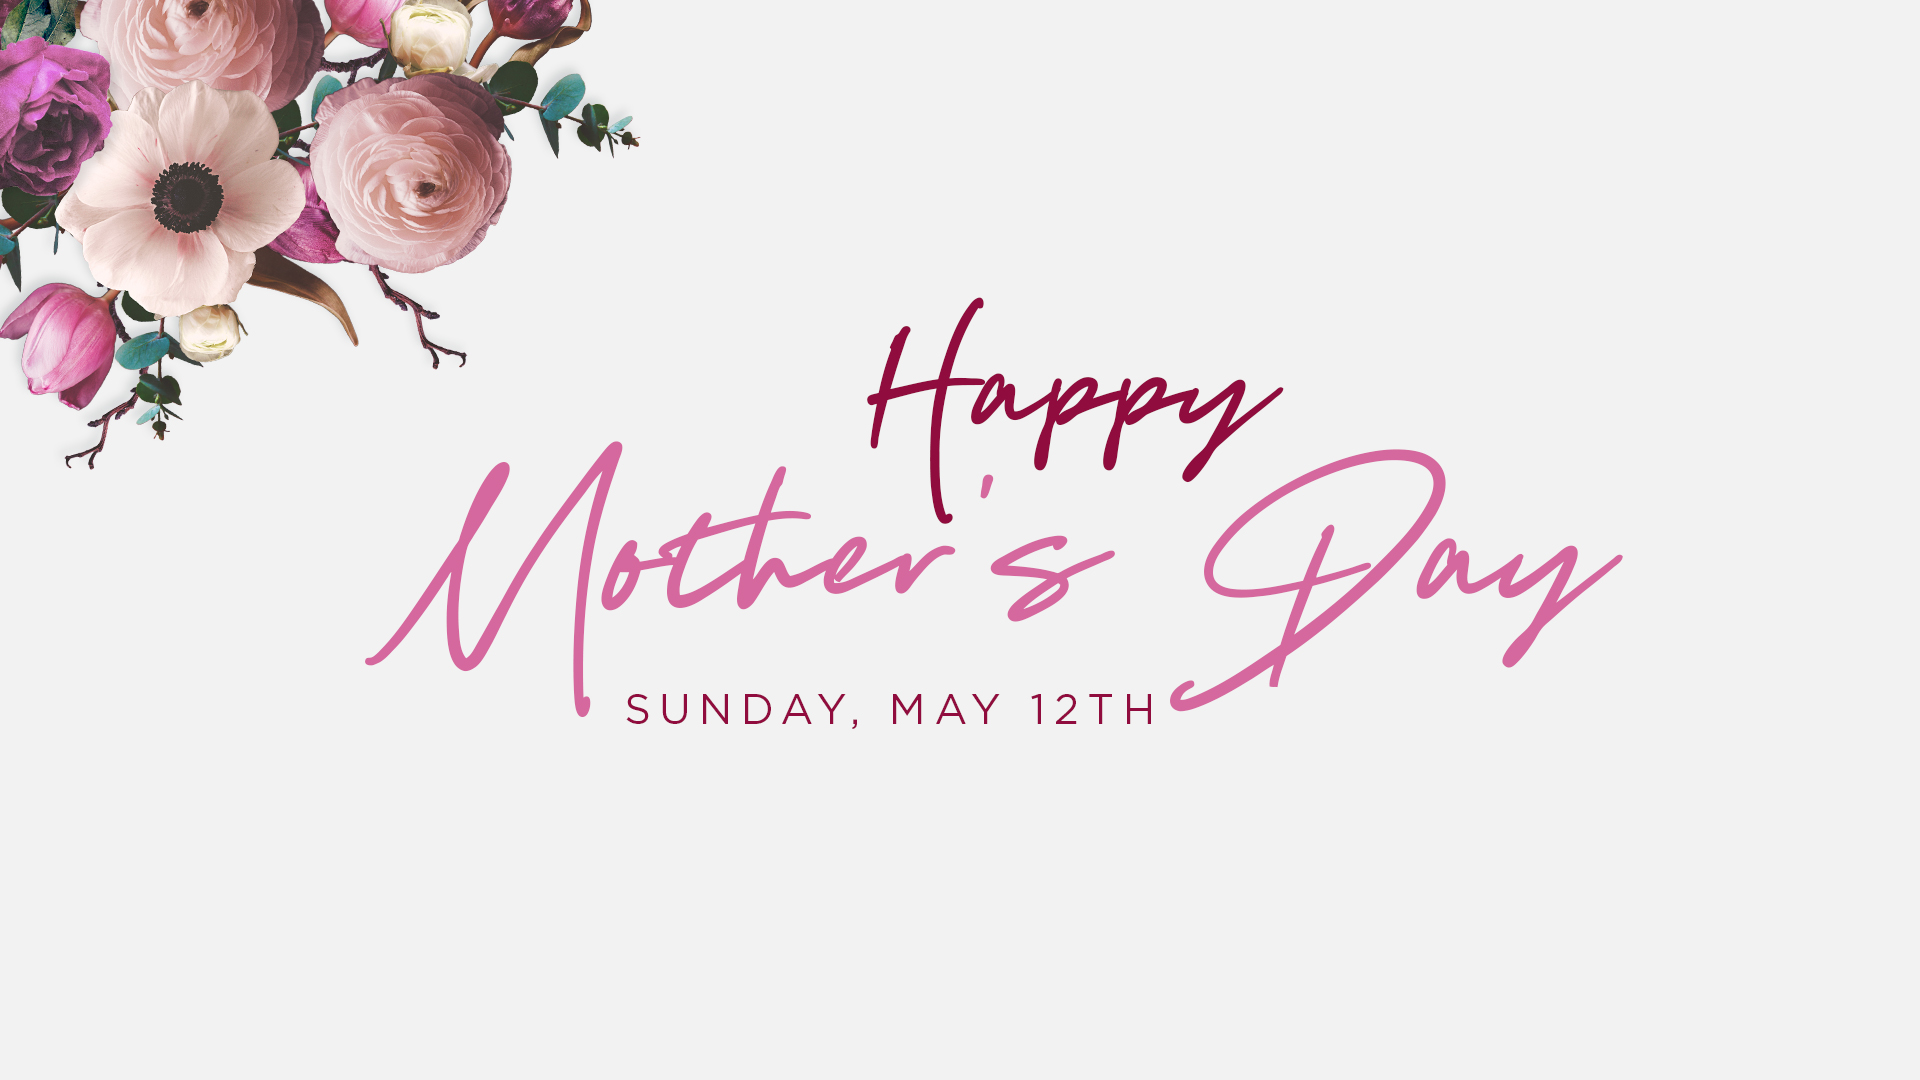 Mother's Day 1920 X 1080 image